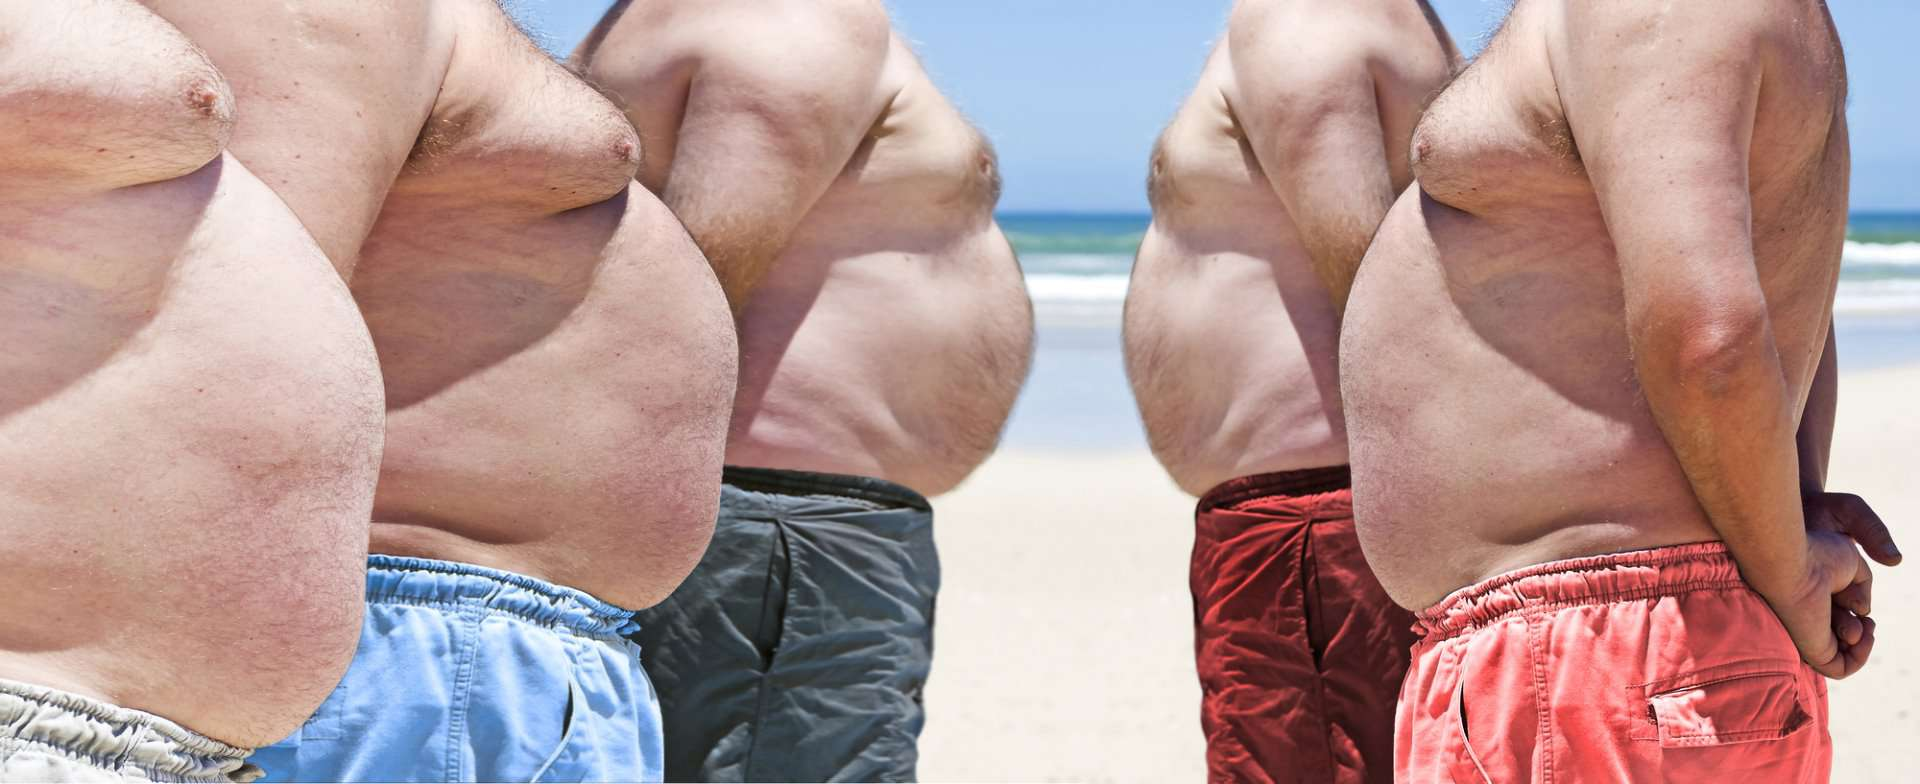 Five Obese Men